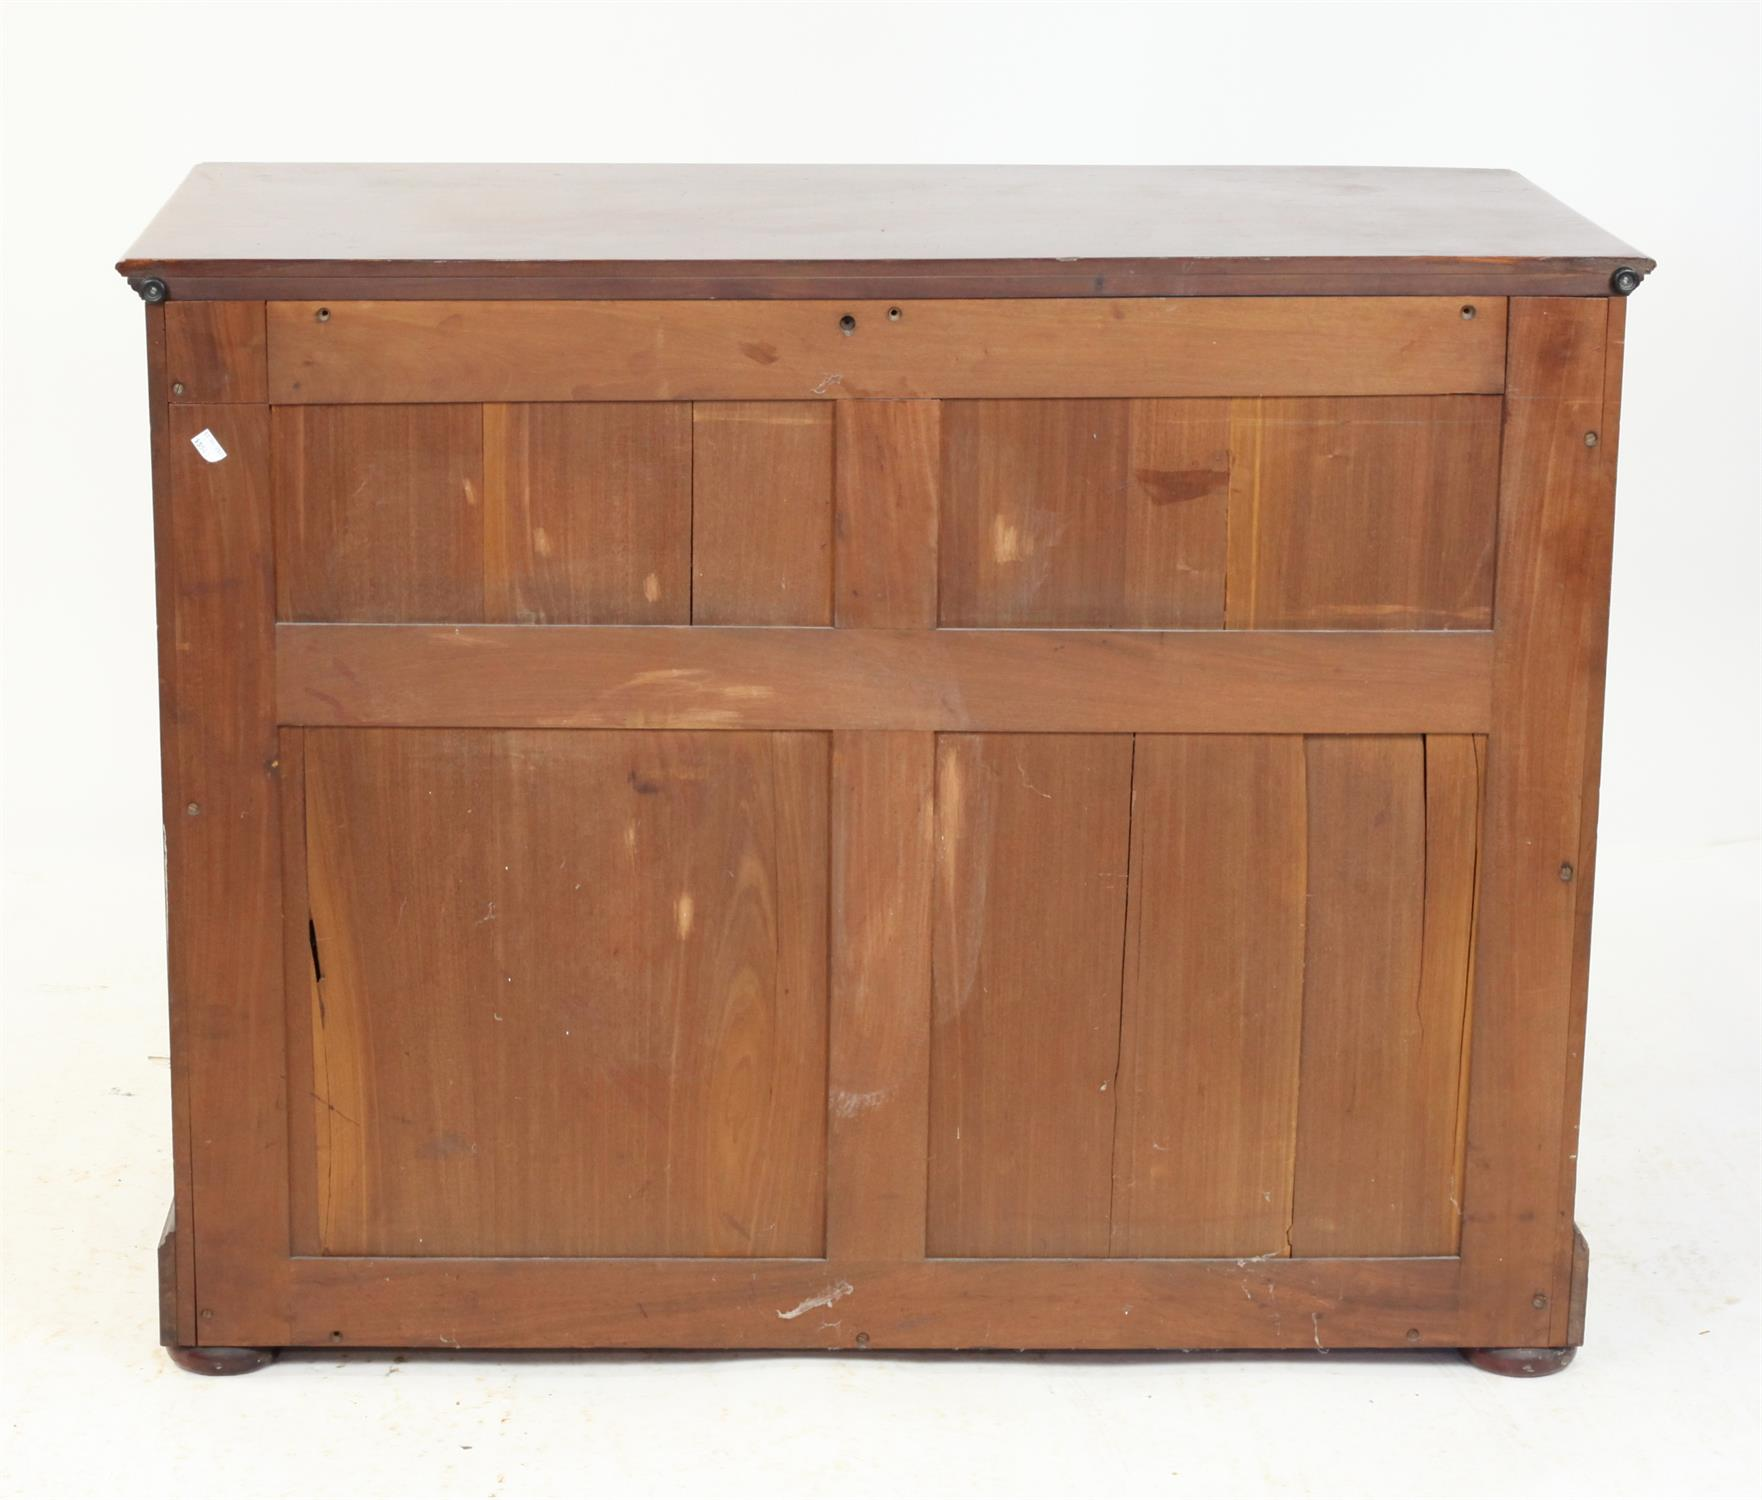 Late 19th / early 20th century mahogany chest of three graduated drawers on bun feet, - Image 2 of 2